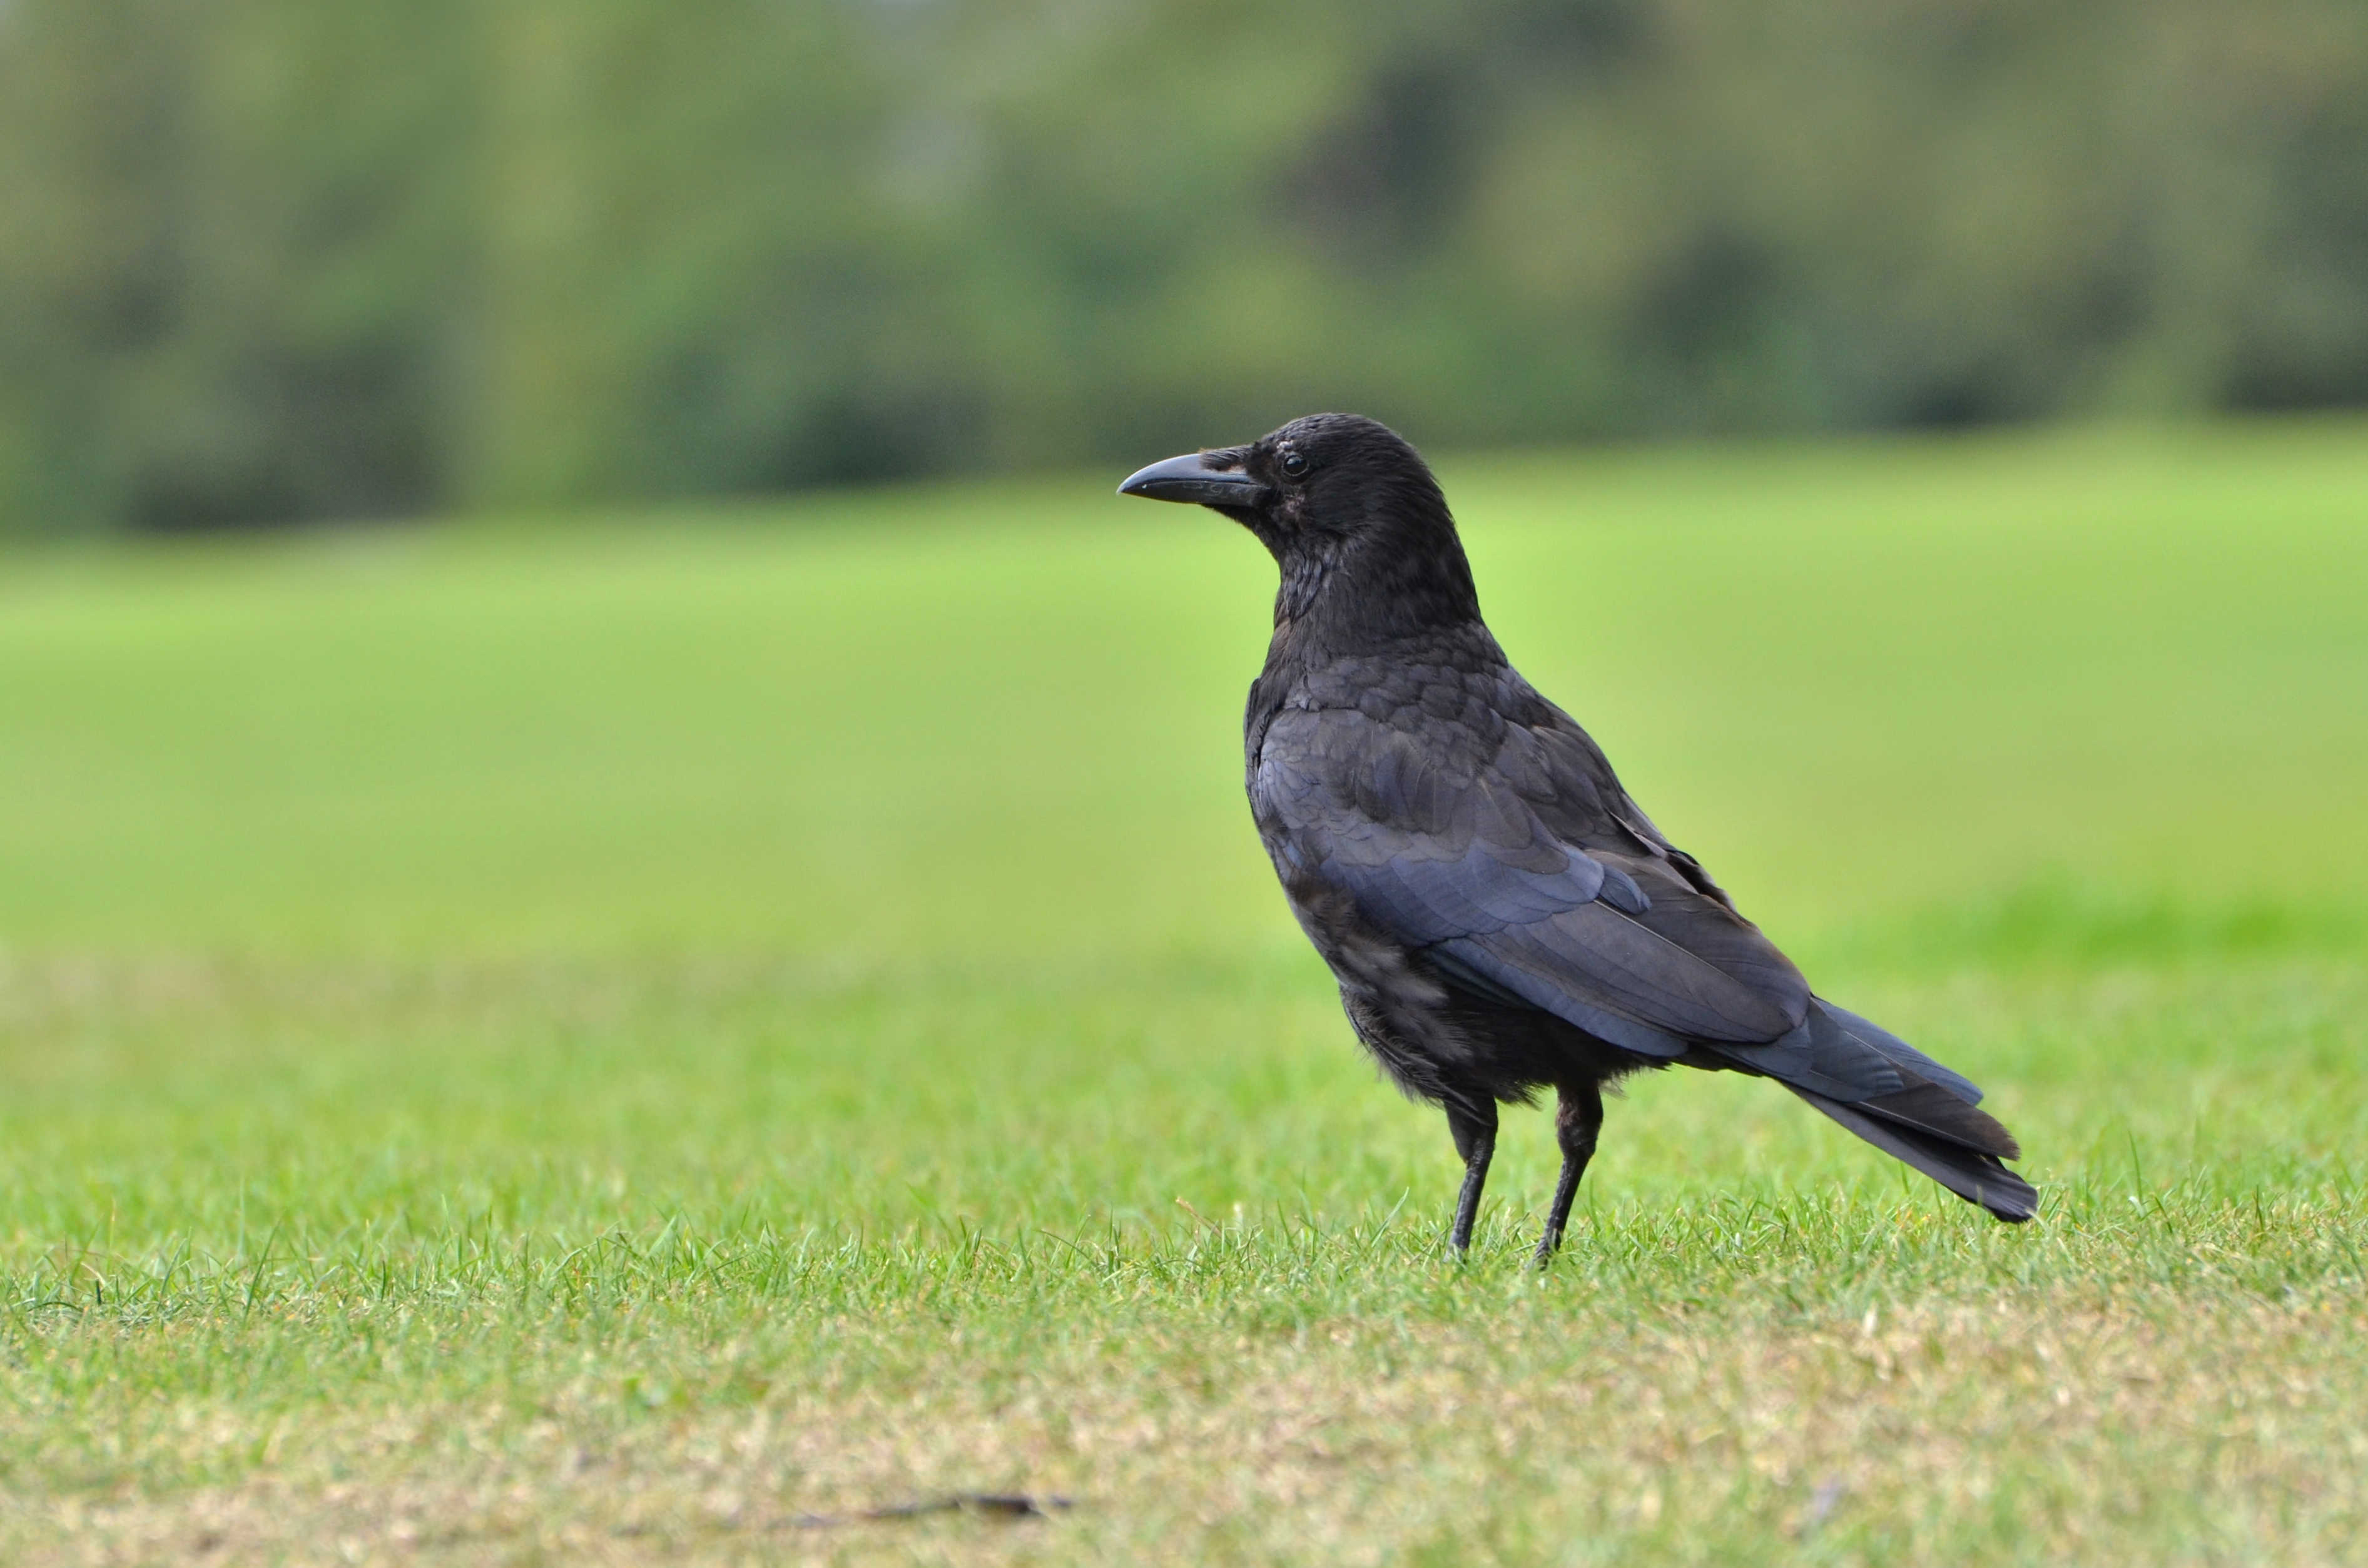 A stock image of a crow